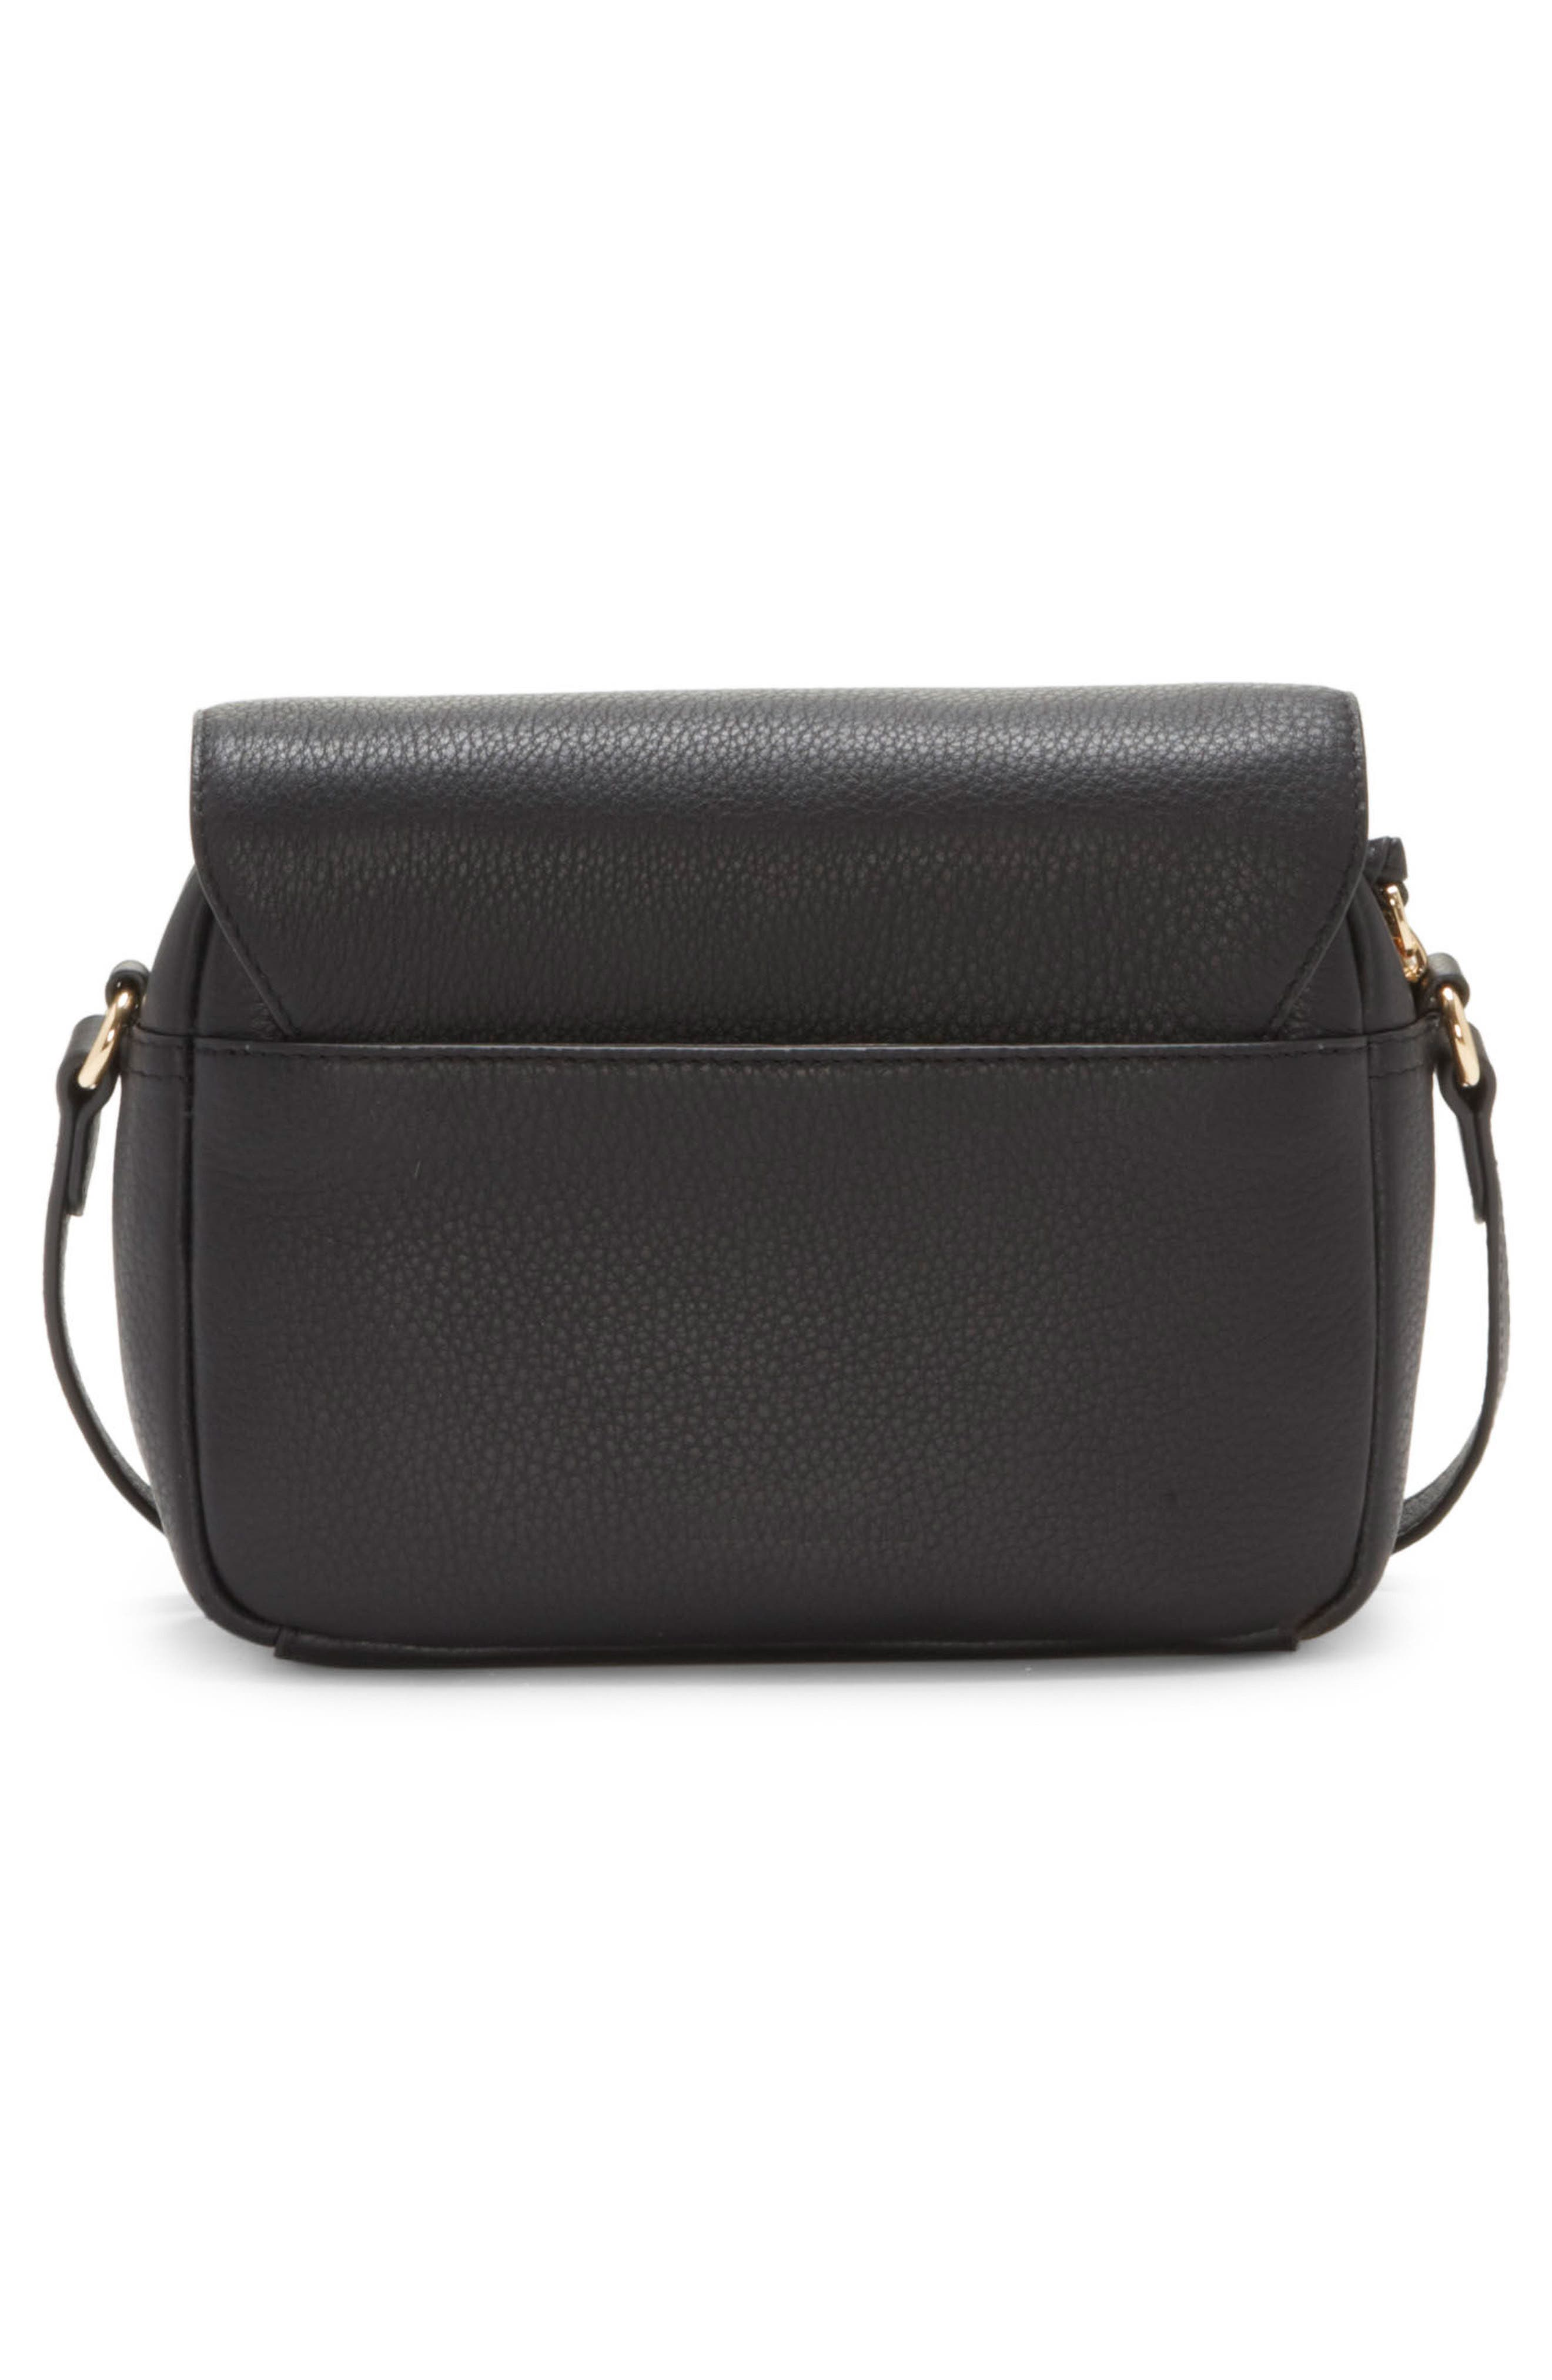 Stina Leather Crossbody Bag,                             Alternate thumbnail 2, color,                             001